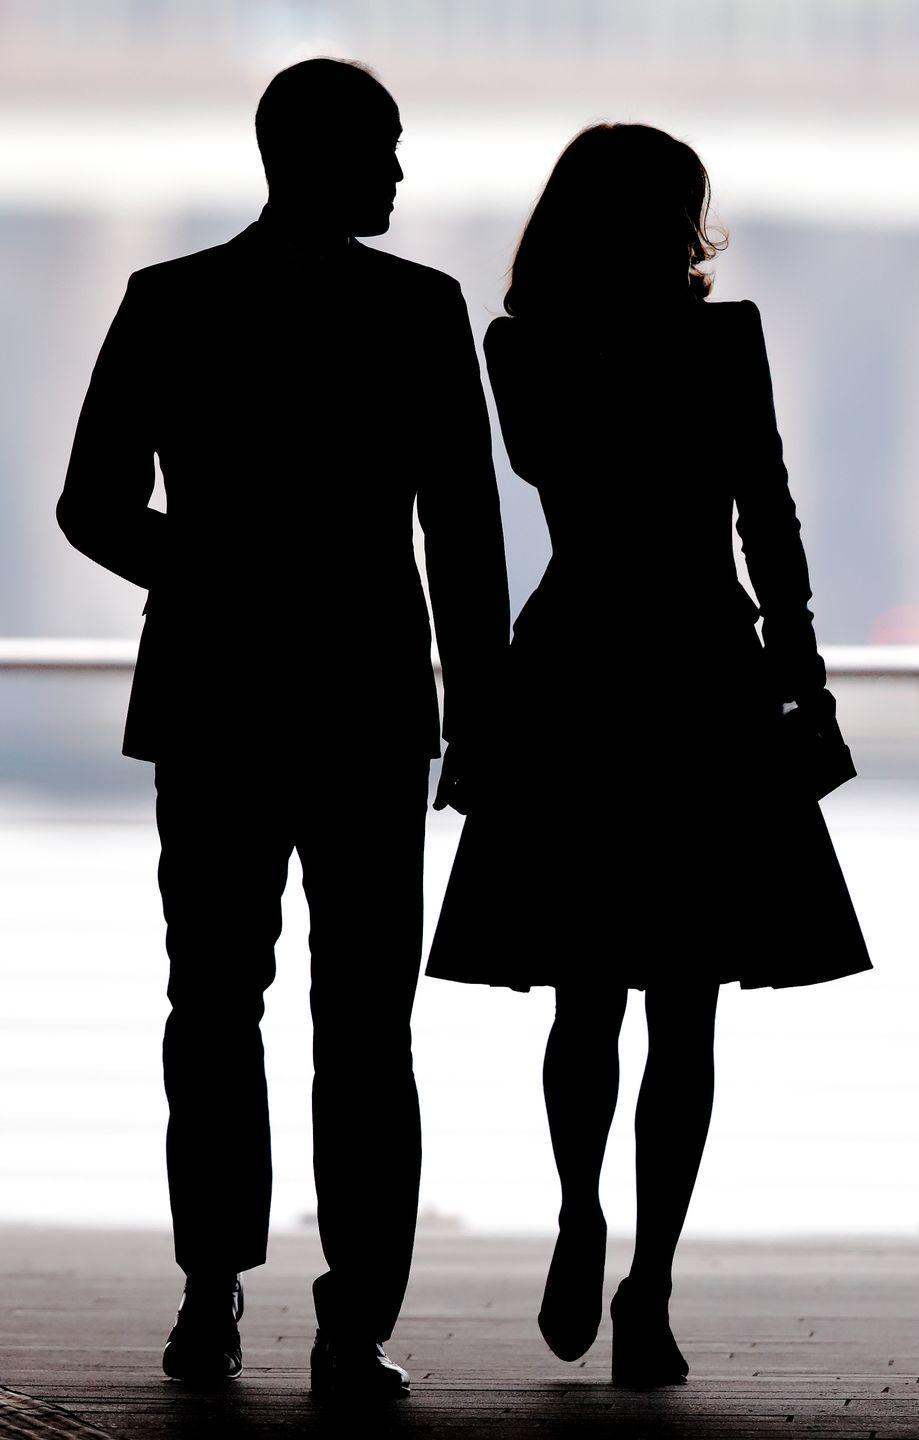 <p>This dramatic silhouette shows the Duke and Duchess of Cambridge, who are known as the Duke and Duchess of Strathearn in Scotland, at the opening of the Dundee, Scotland's first design museum.</p>